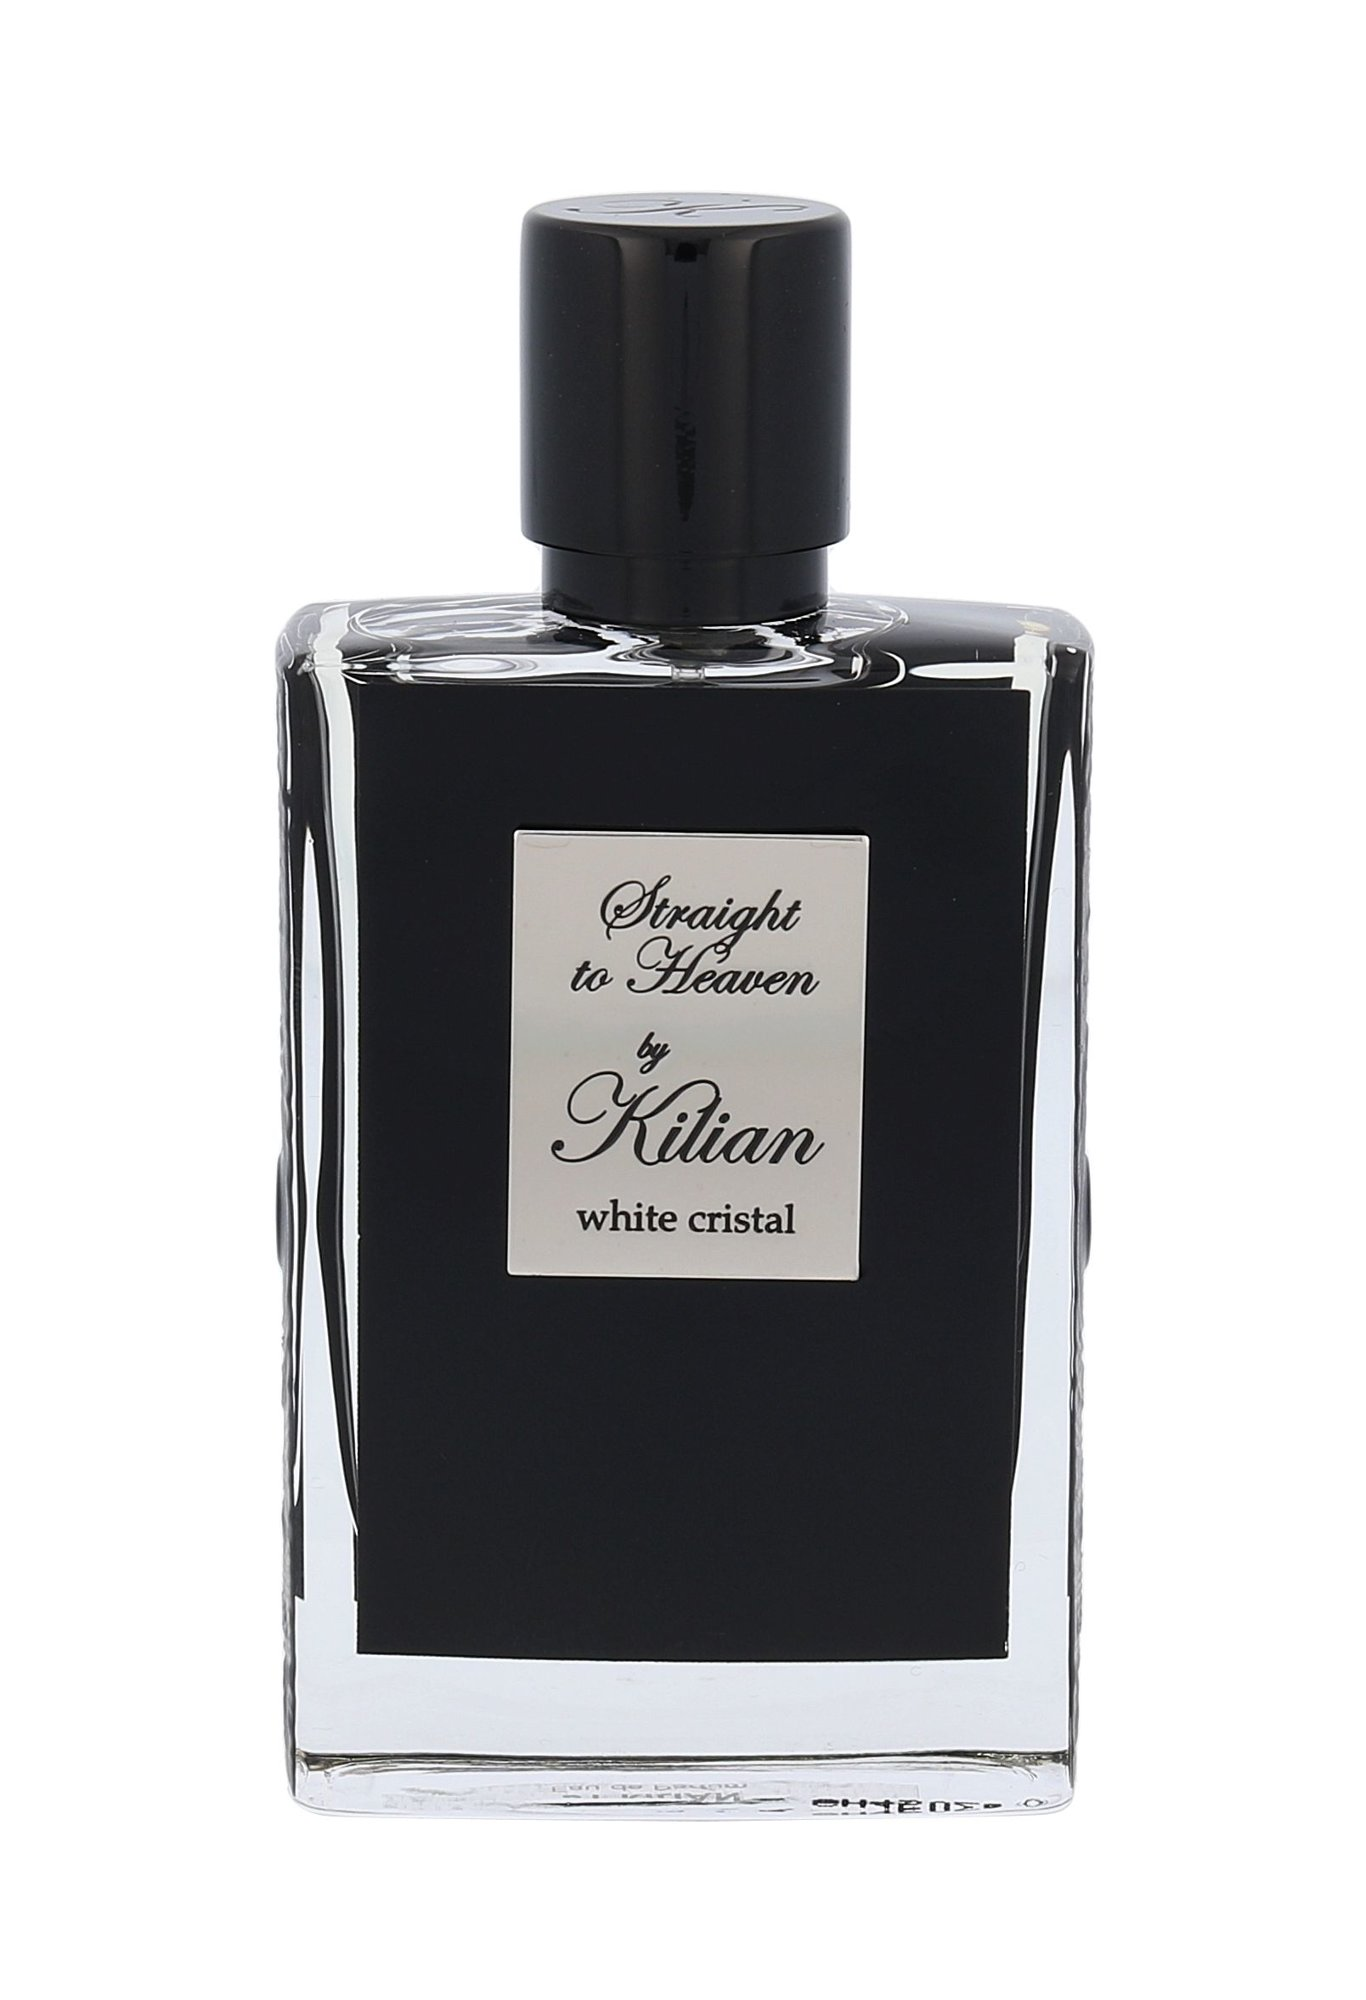 By Kilian The Cellars EDP 50ml  Straight to Heaven